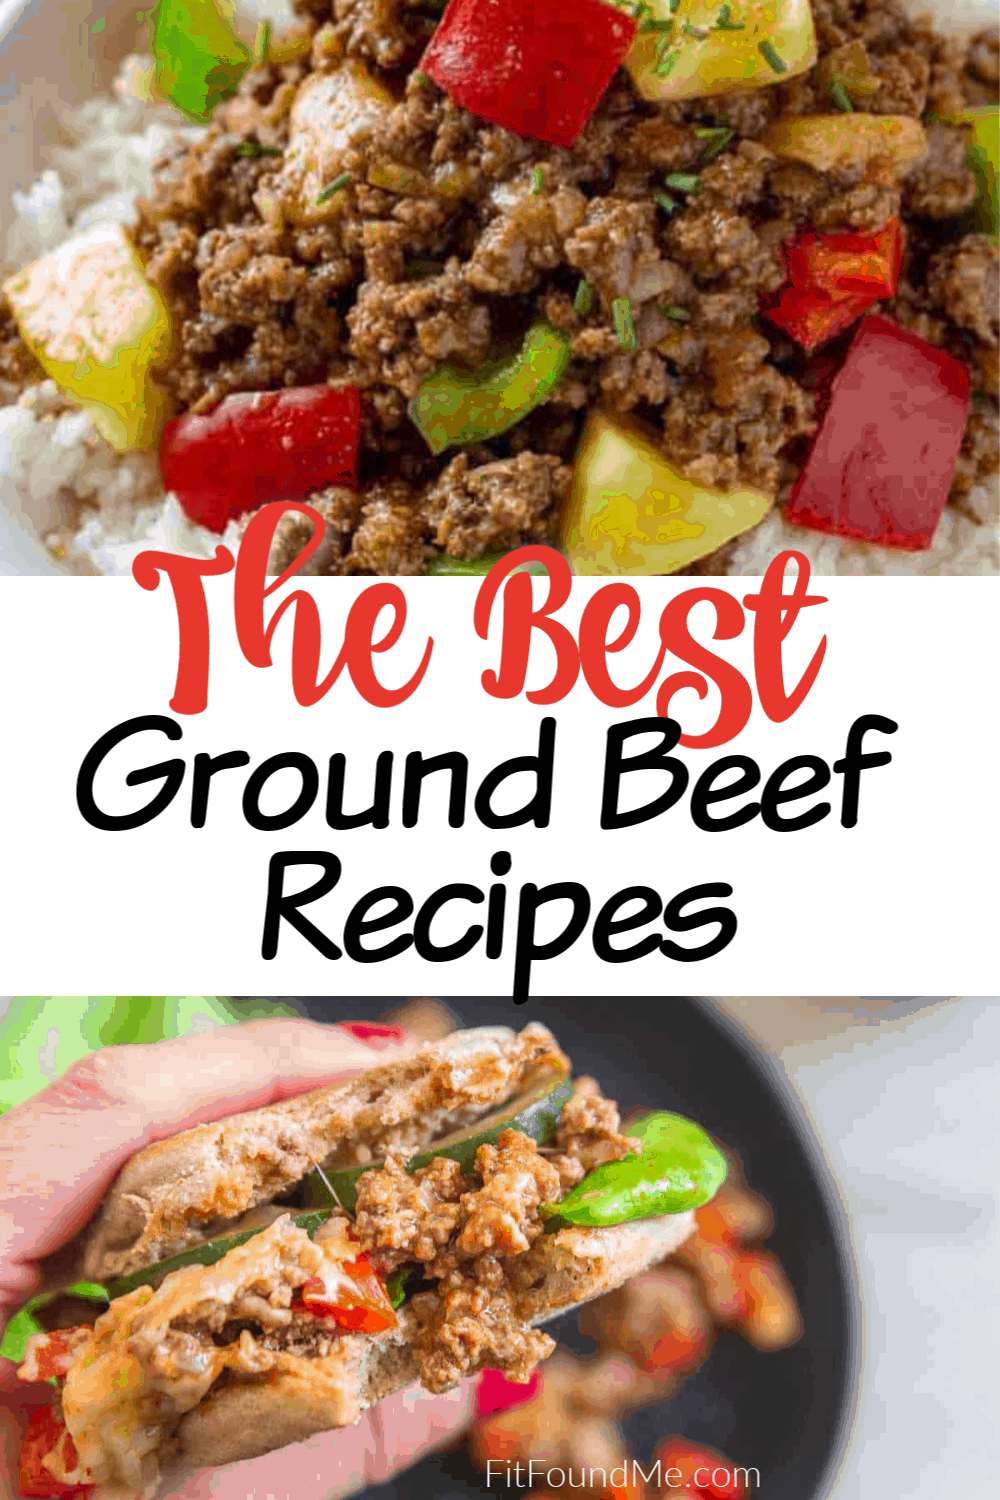 Quick And Healthy Recipes With Ground Beef Fit Found Me In 2020 Beef Recipes Ground Beef Recipes Healthy Best Ground Beef Recipes